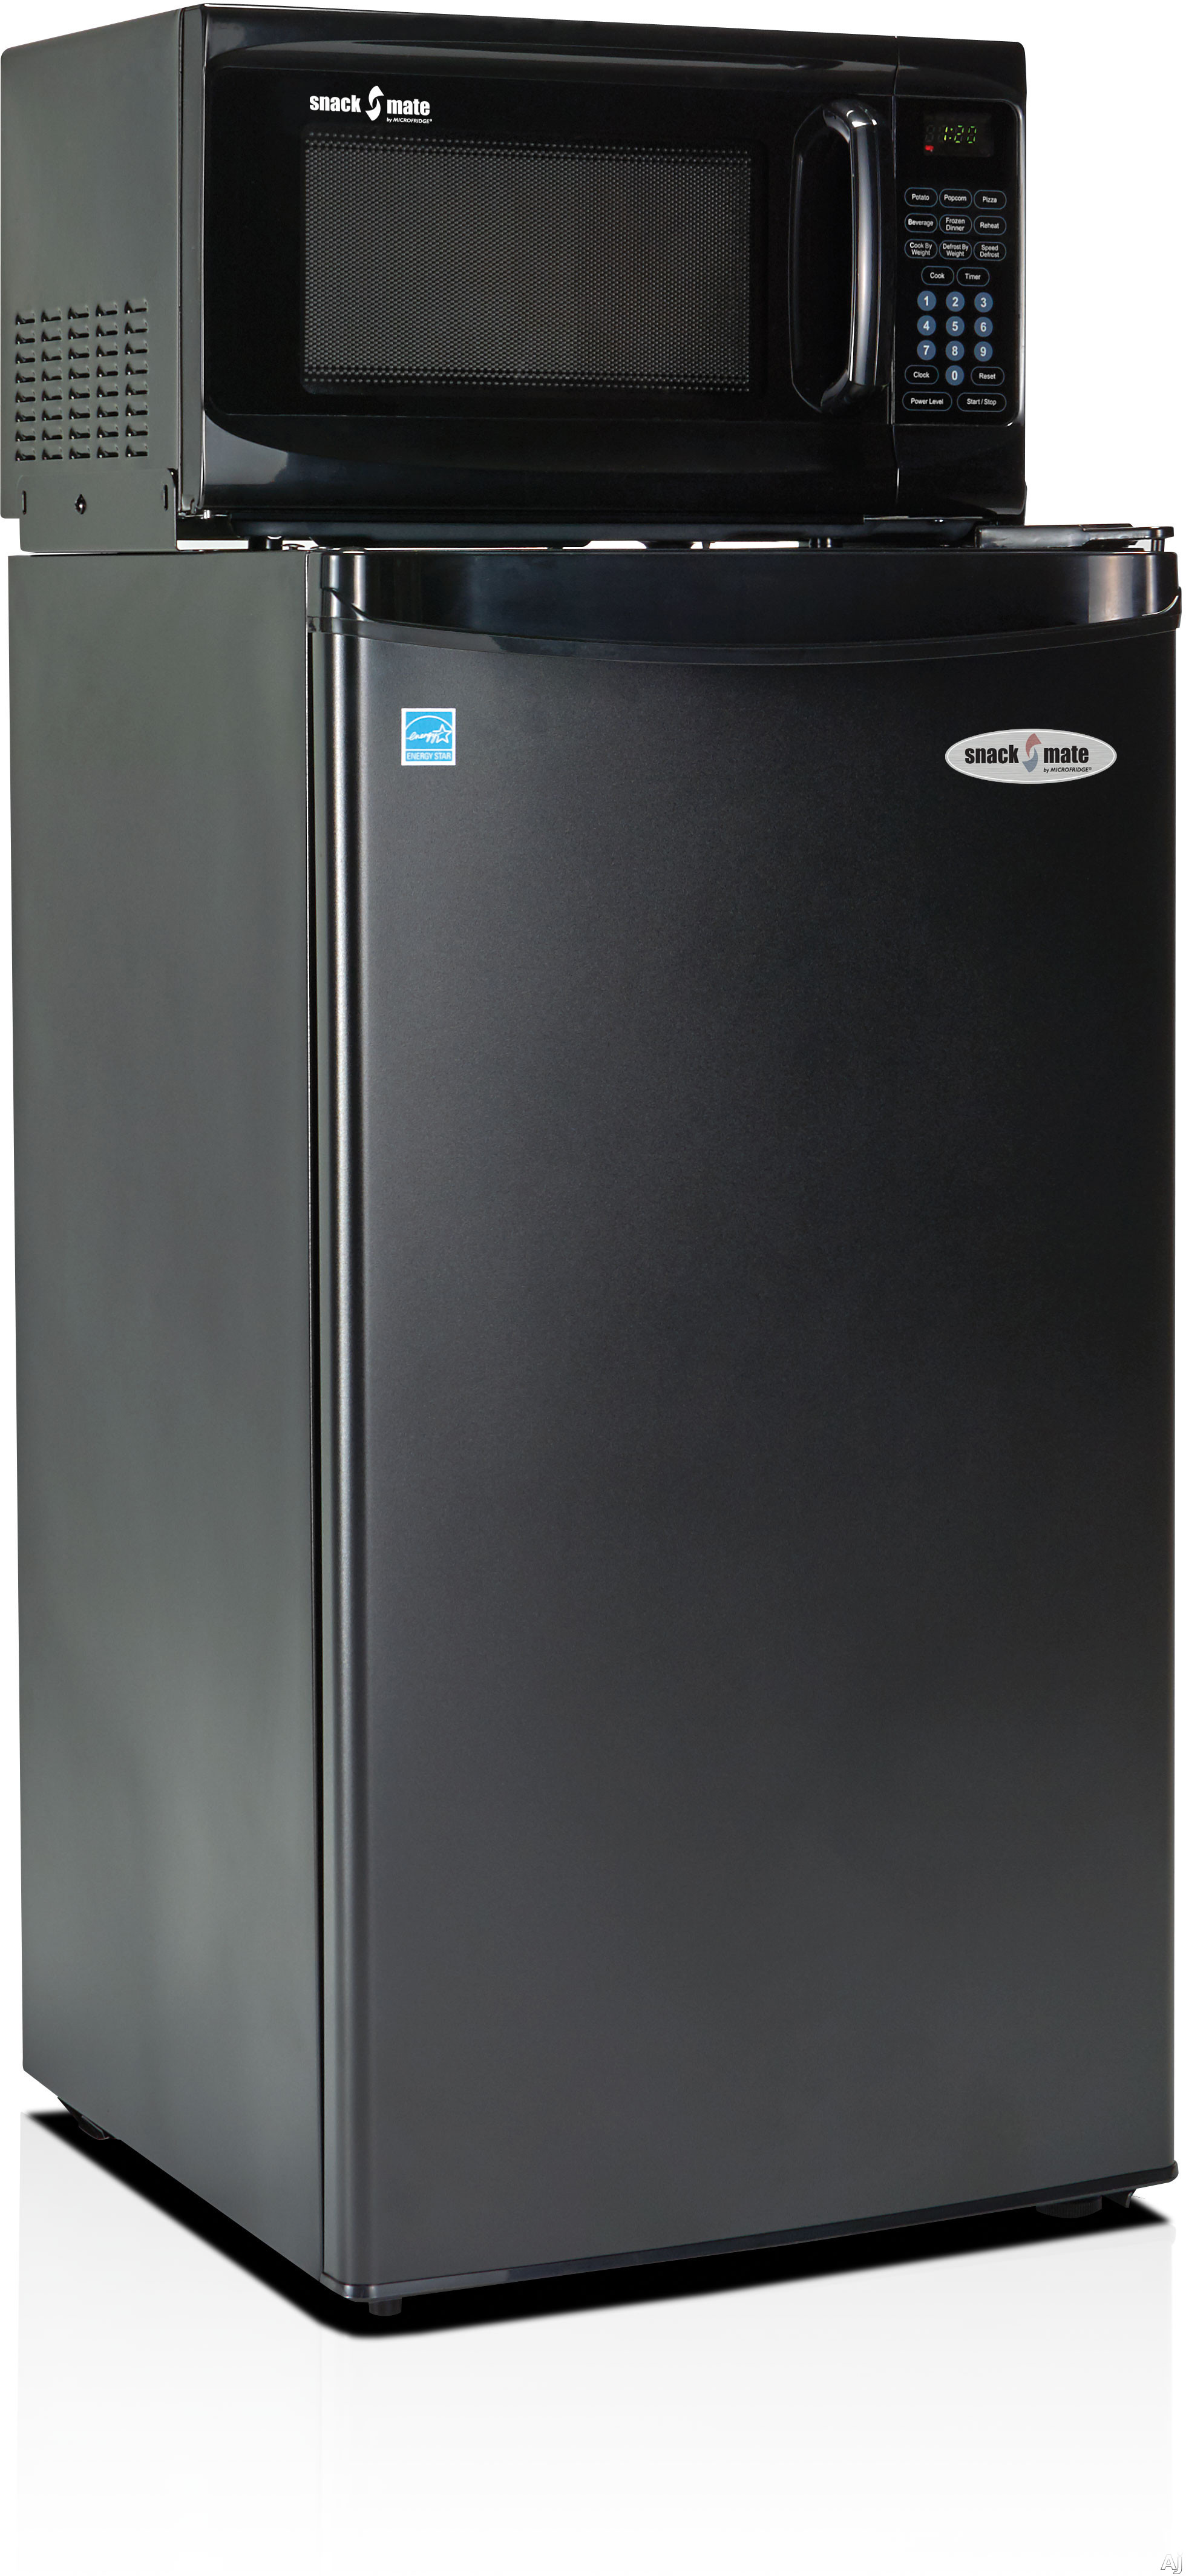 MicroFridge Snackmate Series 32SM47A1 3.2 cu. ft. Compact Refrigerator with 700 Watt Microwave, One-Plug to-the-Wall Operations, 3 Shelves, Ice Compartment and Energy Star Qualified